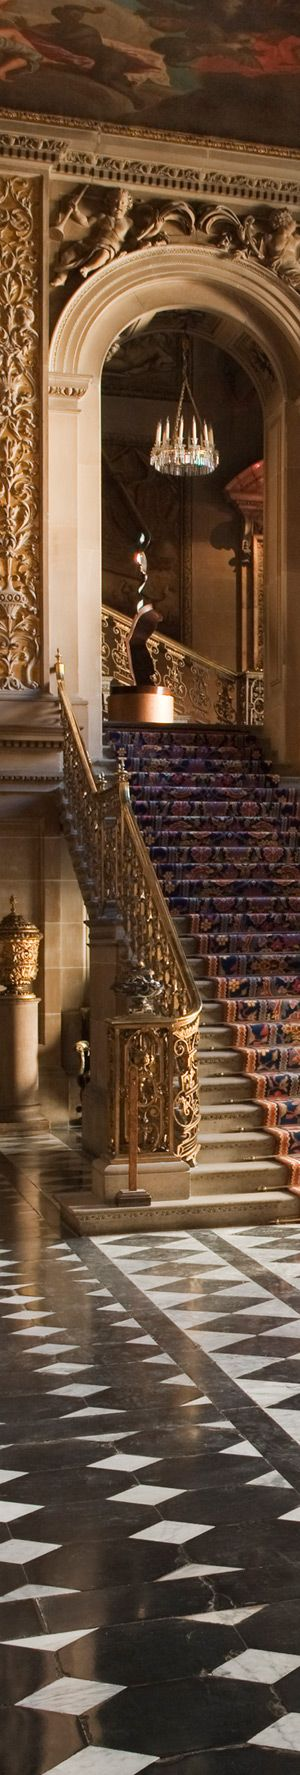 Chatsworth House and displays - Chatsworth House official website